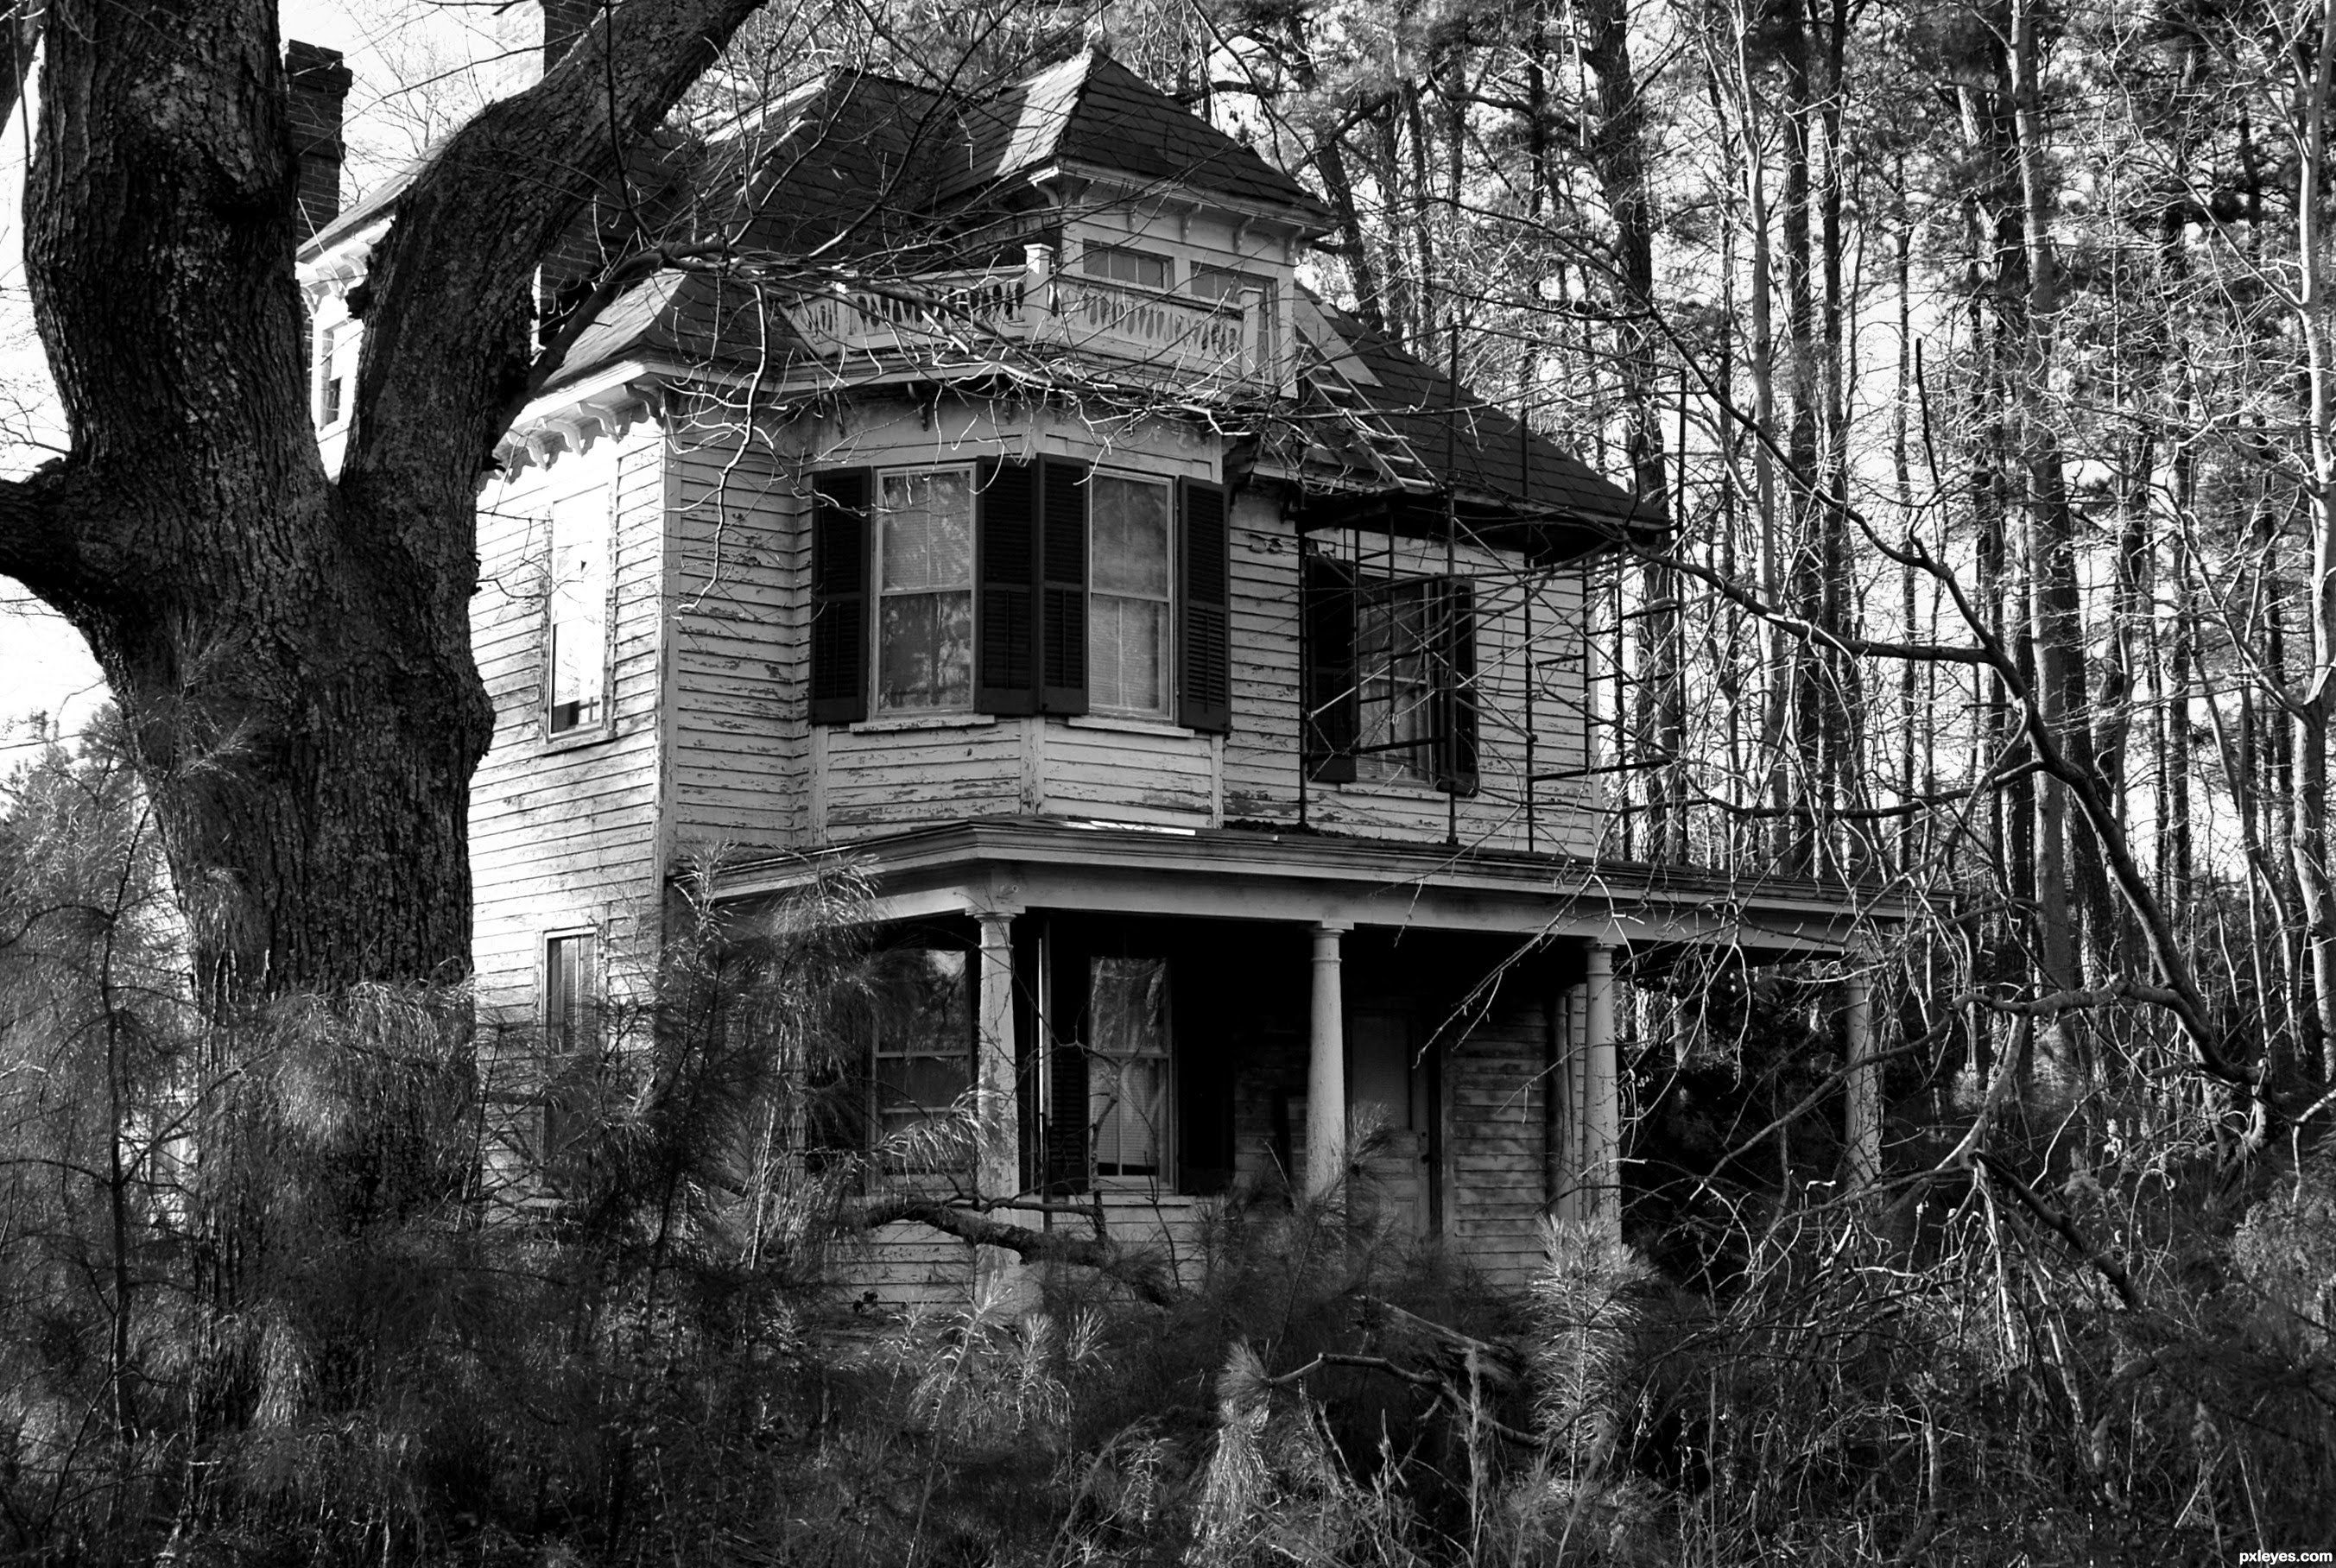 ABANDONED HAUNTED HOUSE IN THE WOODS ALONE AT NIGHT